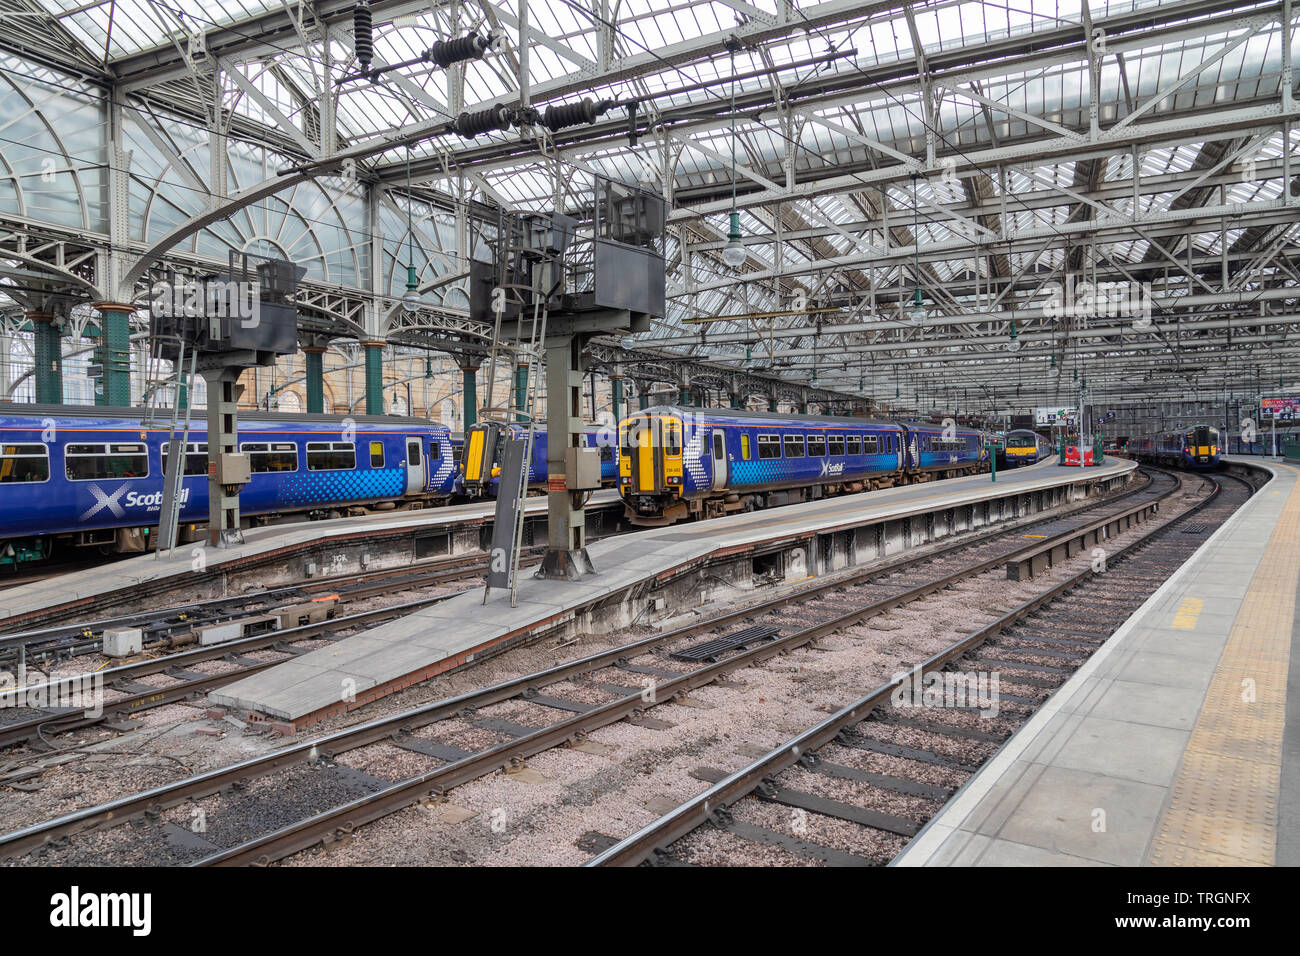 Inside Glasgow Central Station showing a selection of blue Scotrail trains - Stock Image